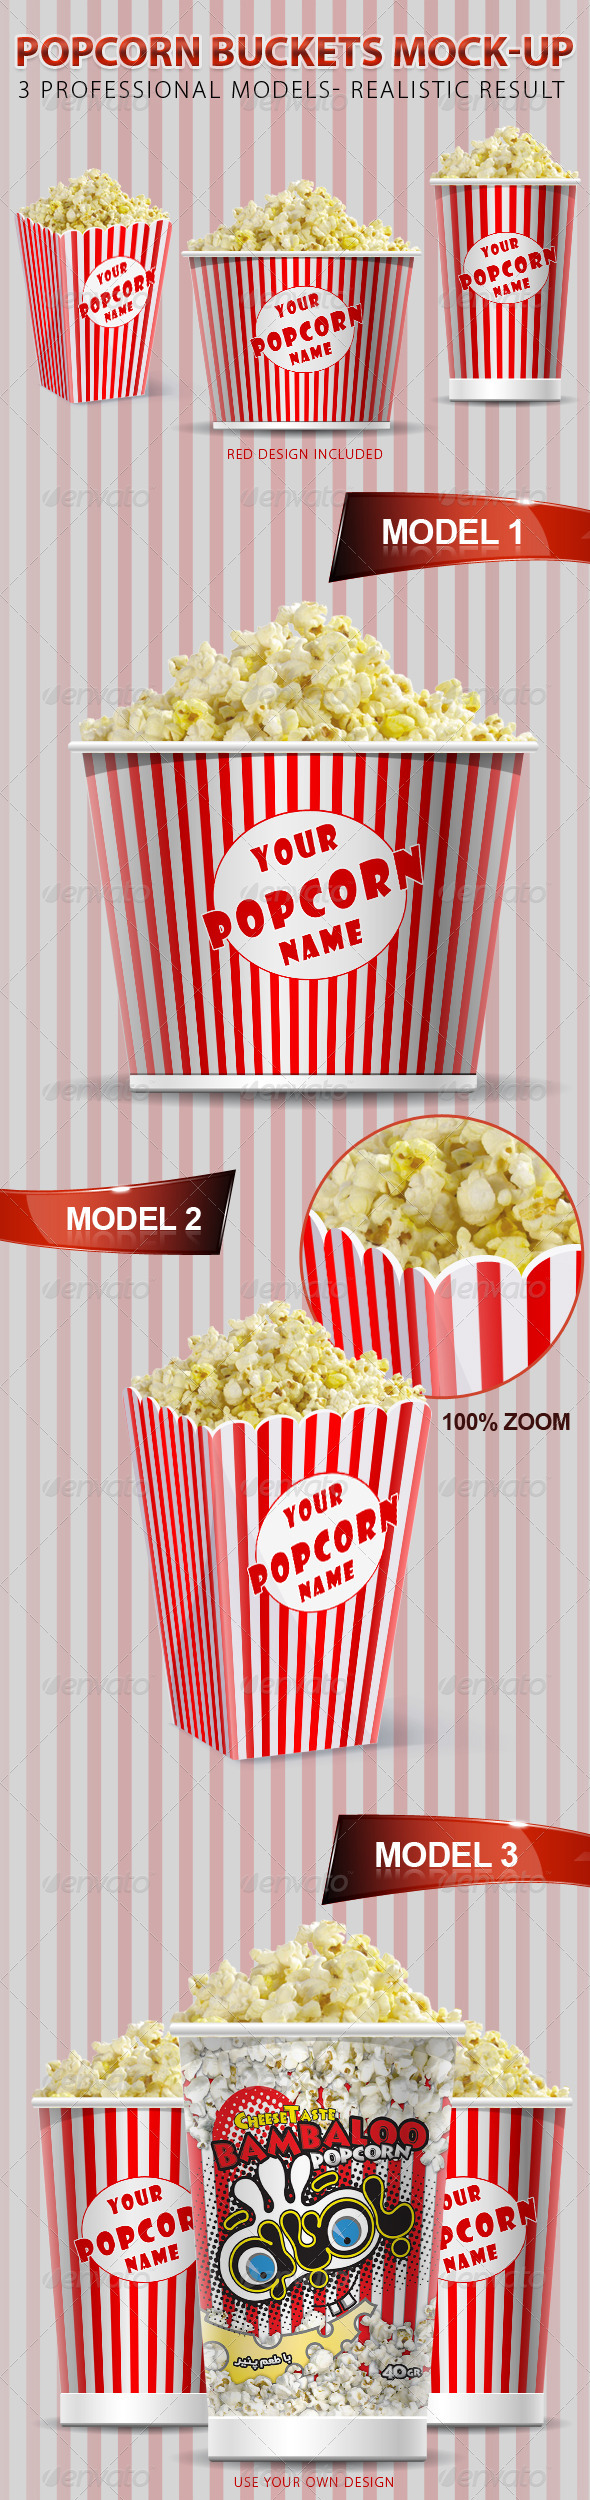 Popcorn Buckets Mock-up - Food and Drink Packaging